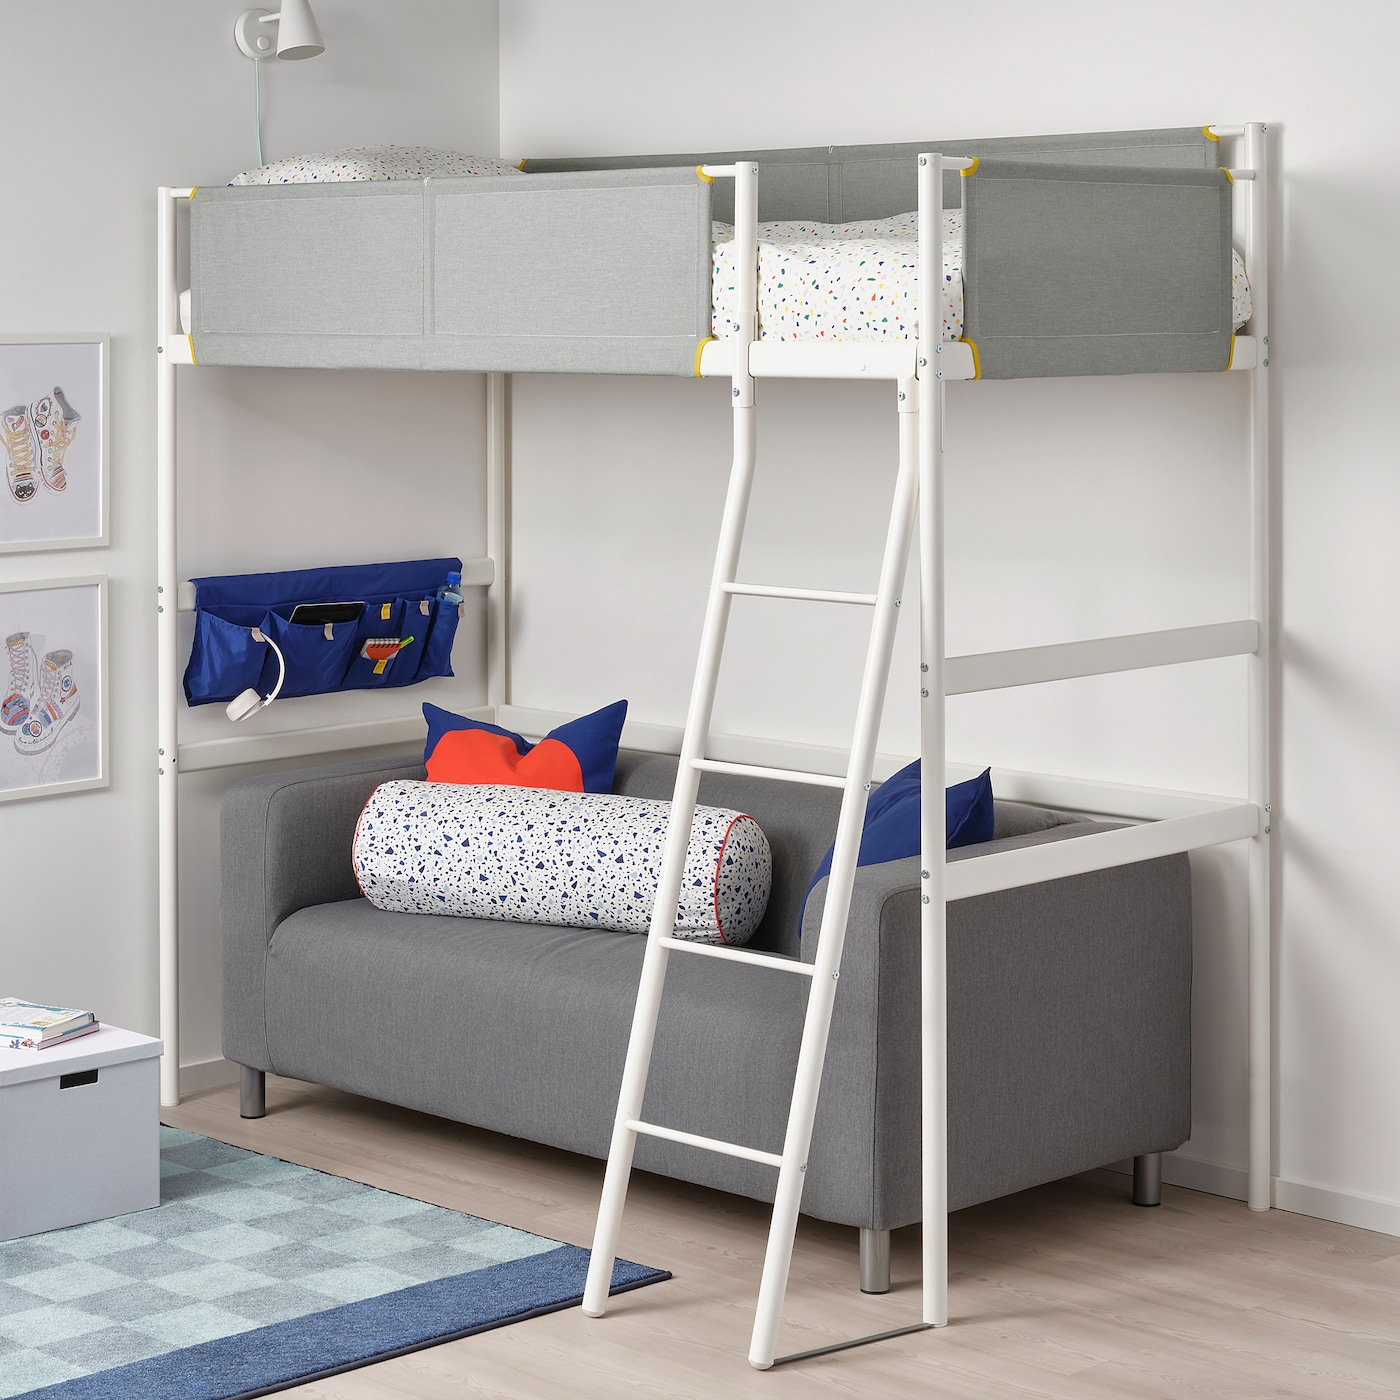 Ikea Uk Bunk Beds Cheaper Than Retail Price Buy Clothing Accessories And Lifestyle Products For Women Men